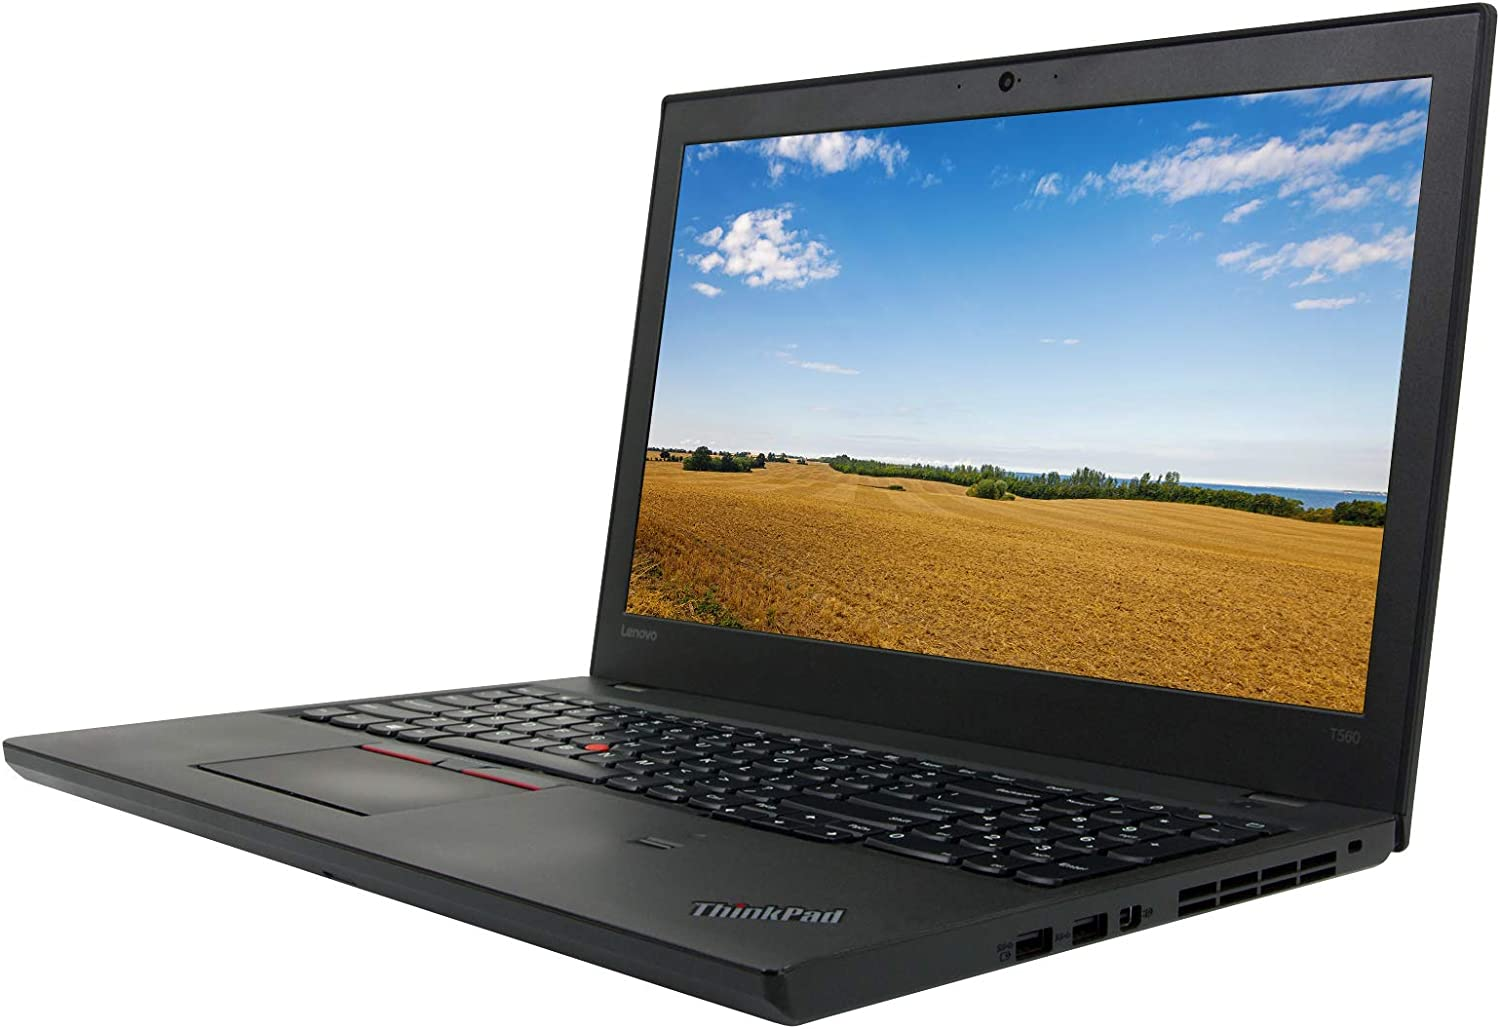 "Lenovo ThinkPad T560 15.6"" HD, Core i5-6300U 2.4GHz, 8GB RAM, 256GB Solid State Drive, Windows 10 Pro 64Bit, CAM, (Renewed)"